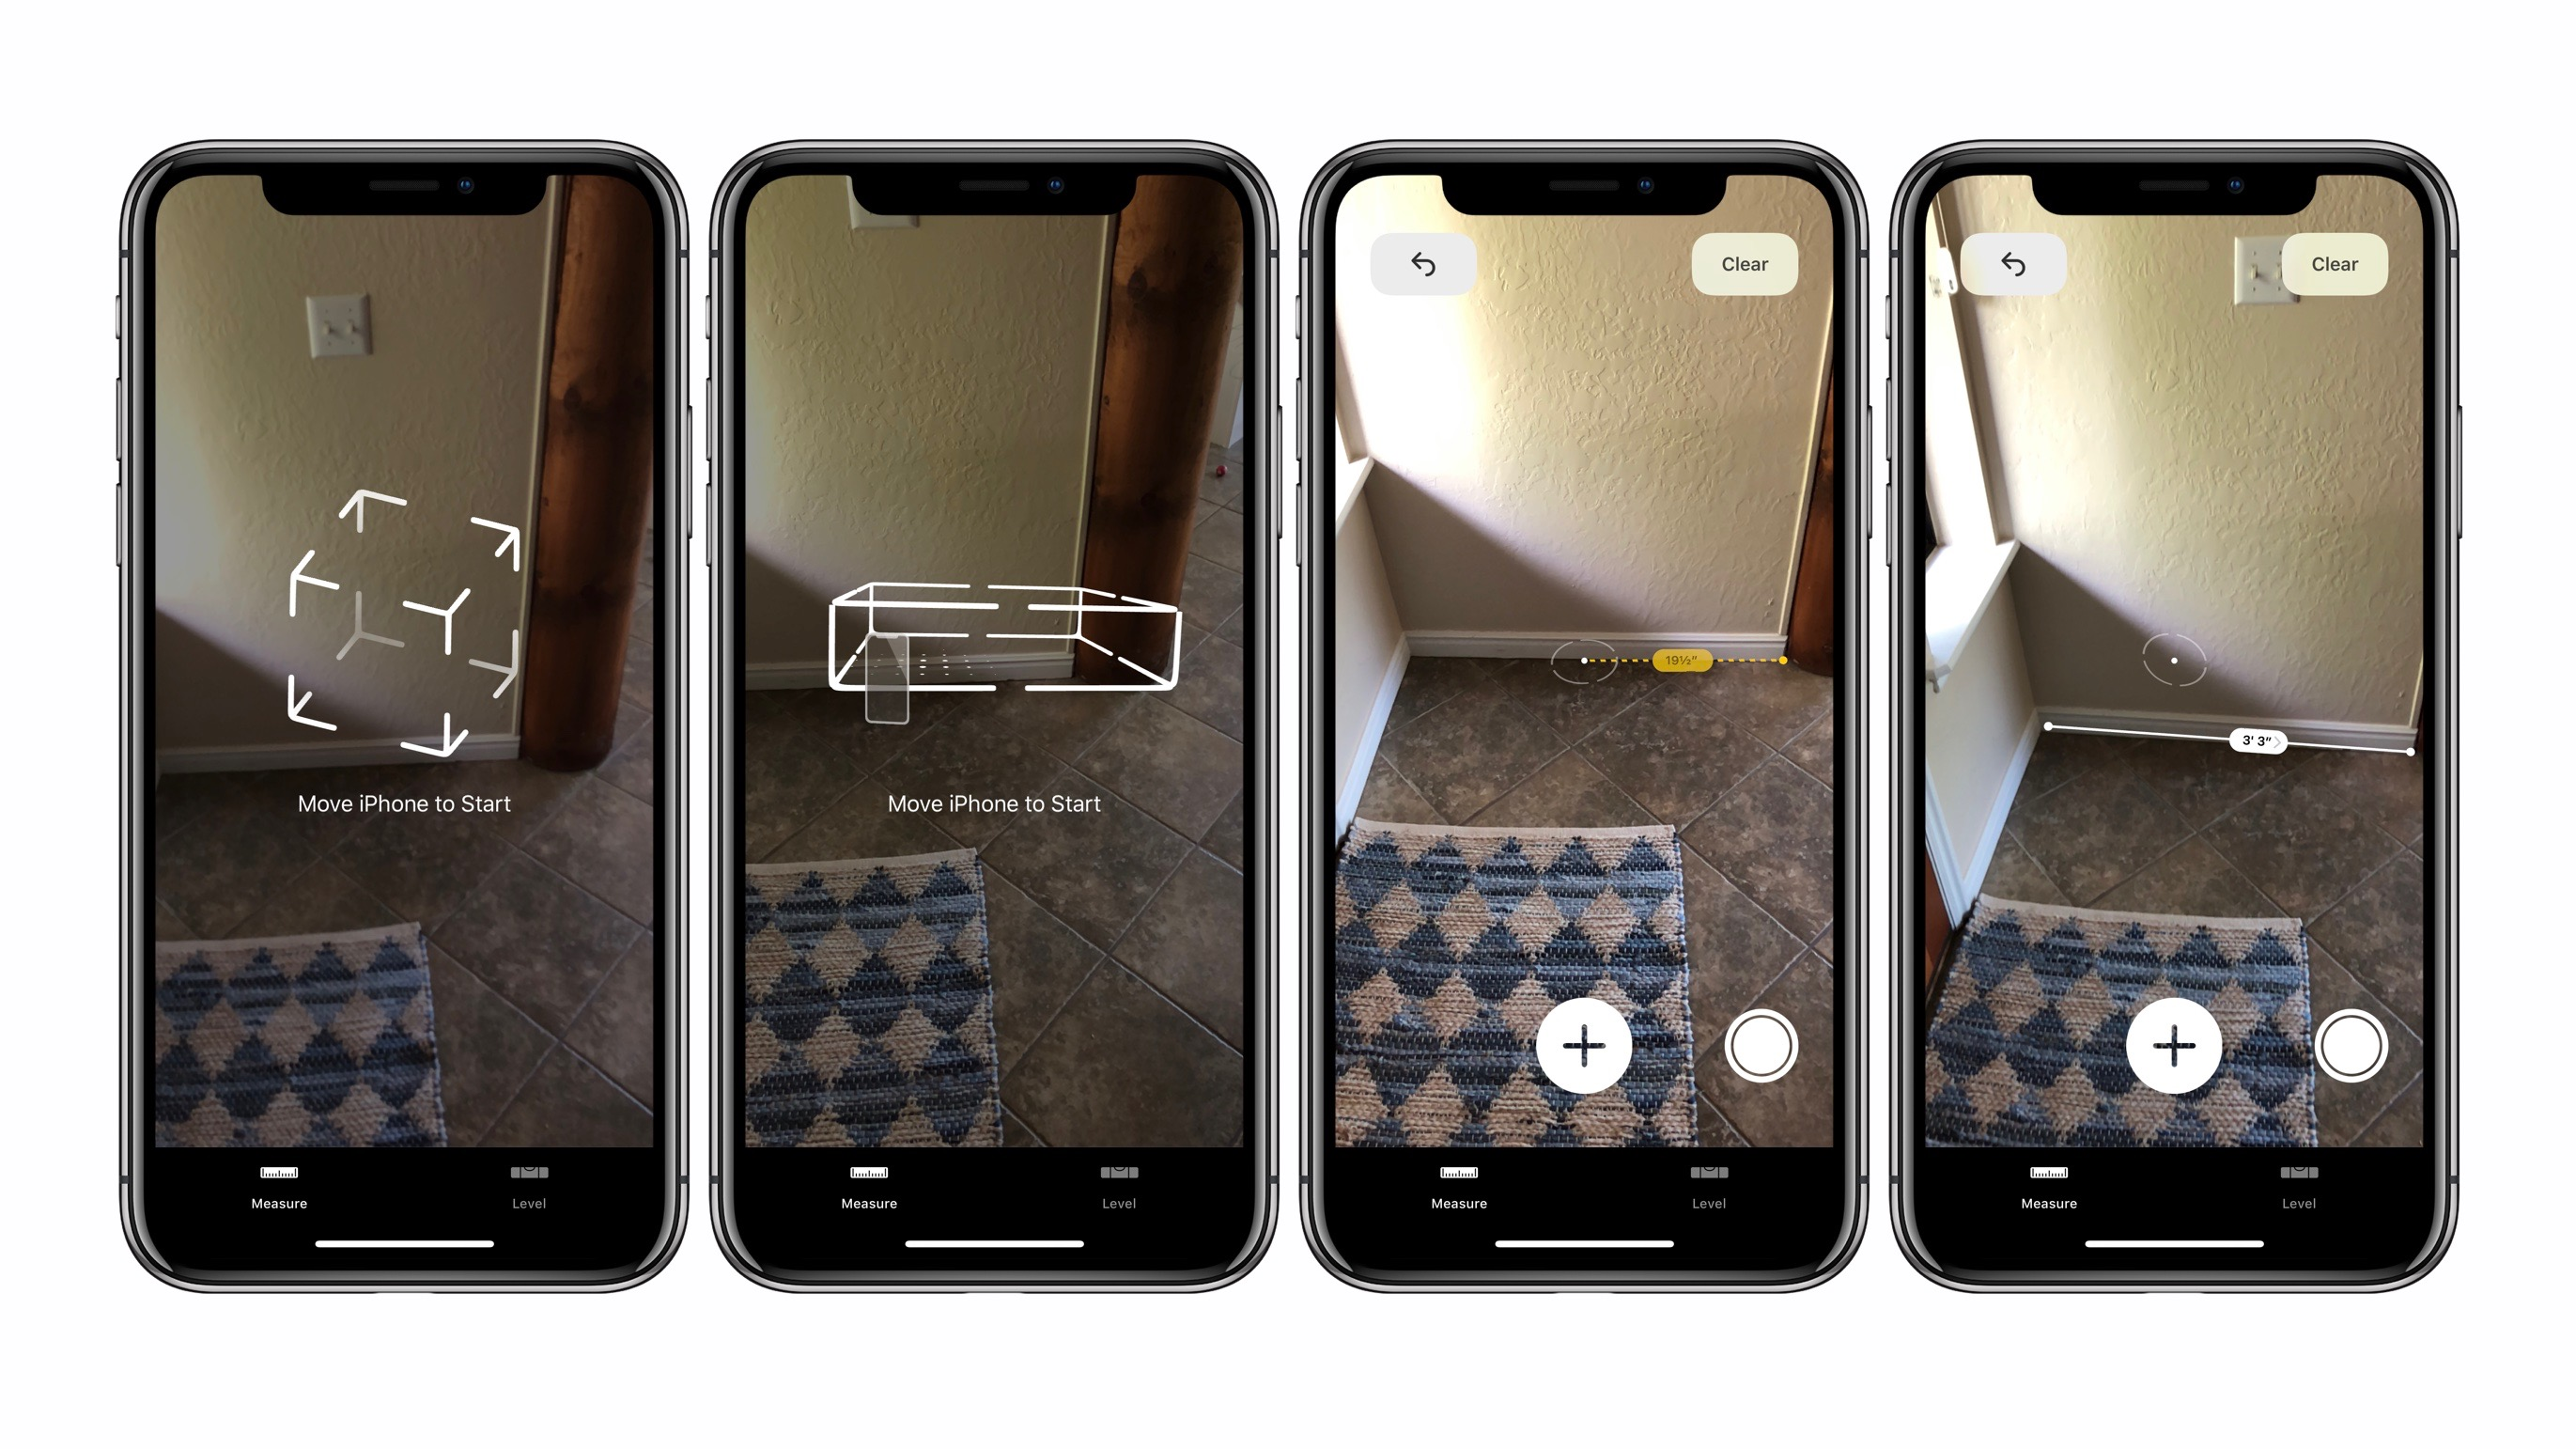 iOS 12: How to use the ARKit Measure app on iPhone - 9to5Mac